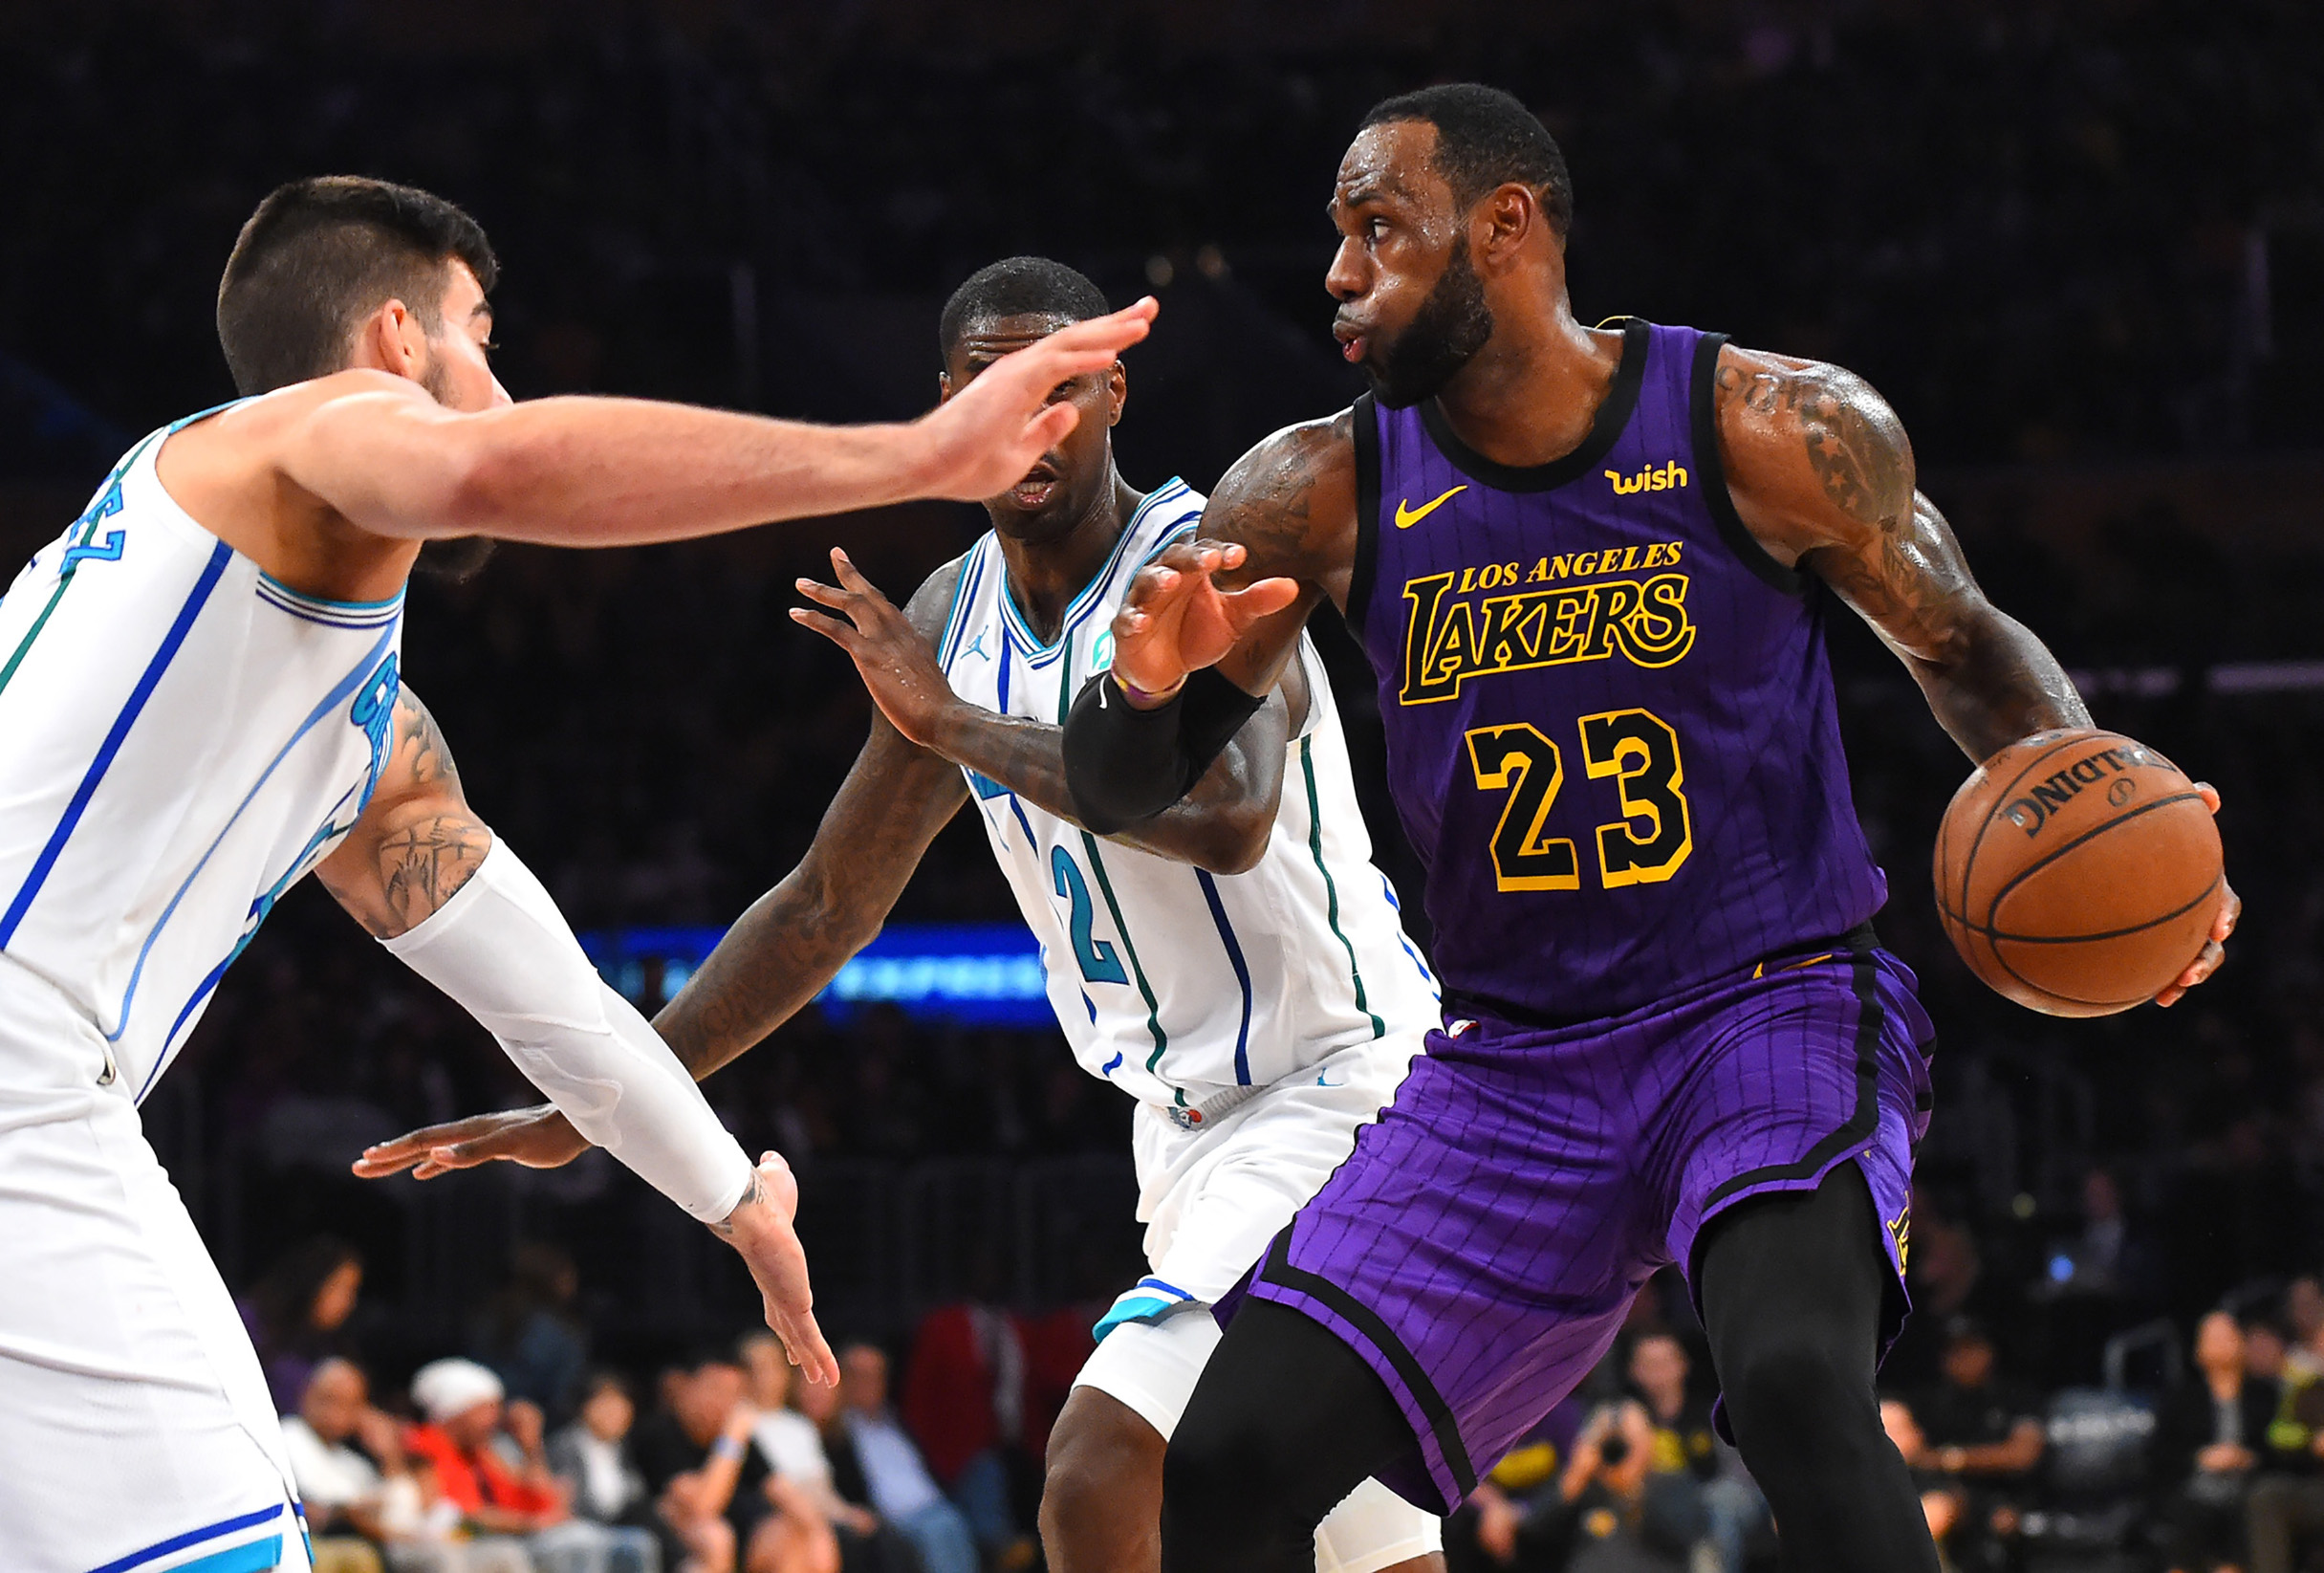 2019-03-30T051303Z_1501272272_NOCID_RTRMADP_3_NBA-CHARLOTTE-HORNETS-AT-LOS-ANGELES-LAKERS